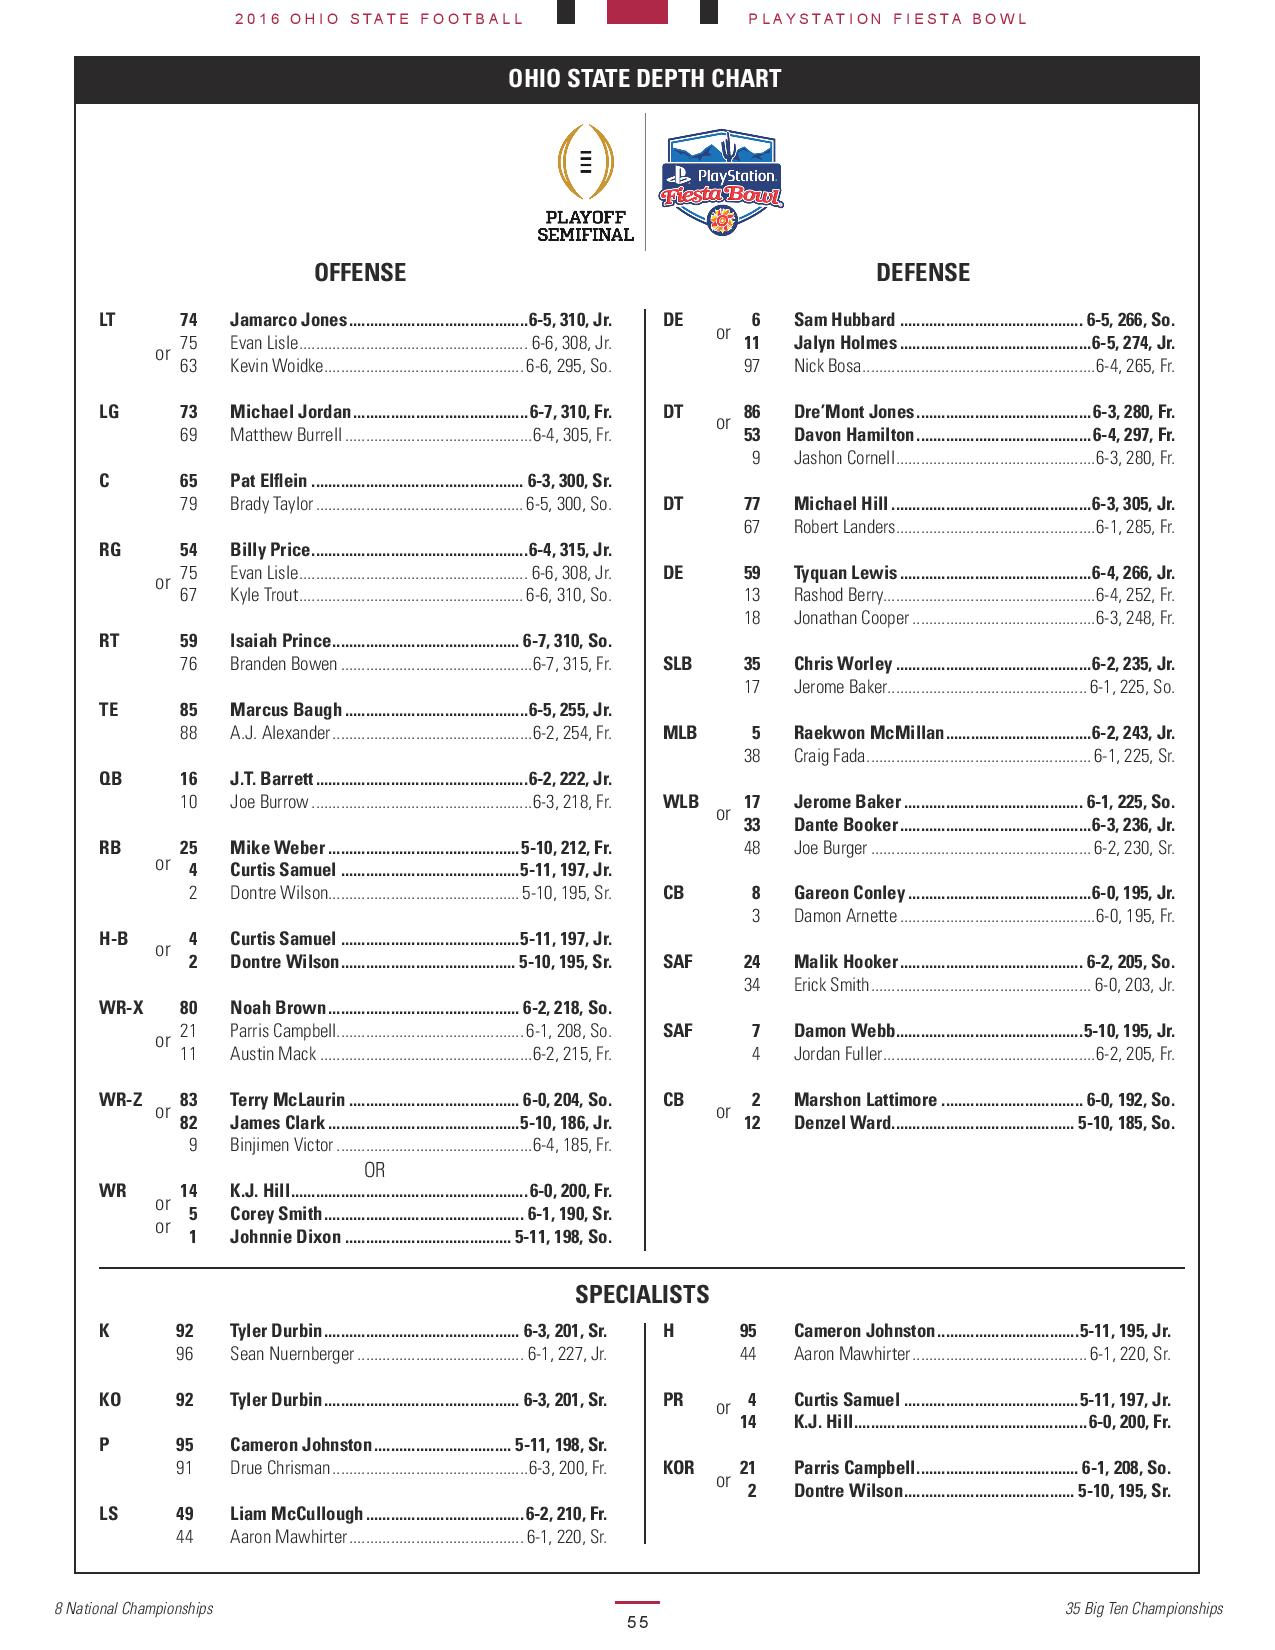 Ohio State-Clemson 2016 depth chart: No changes heading